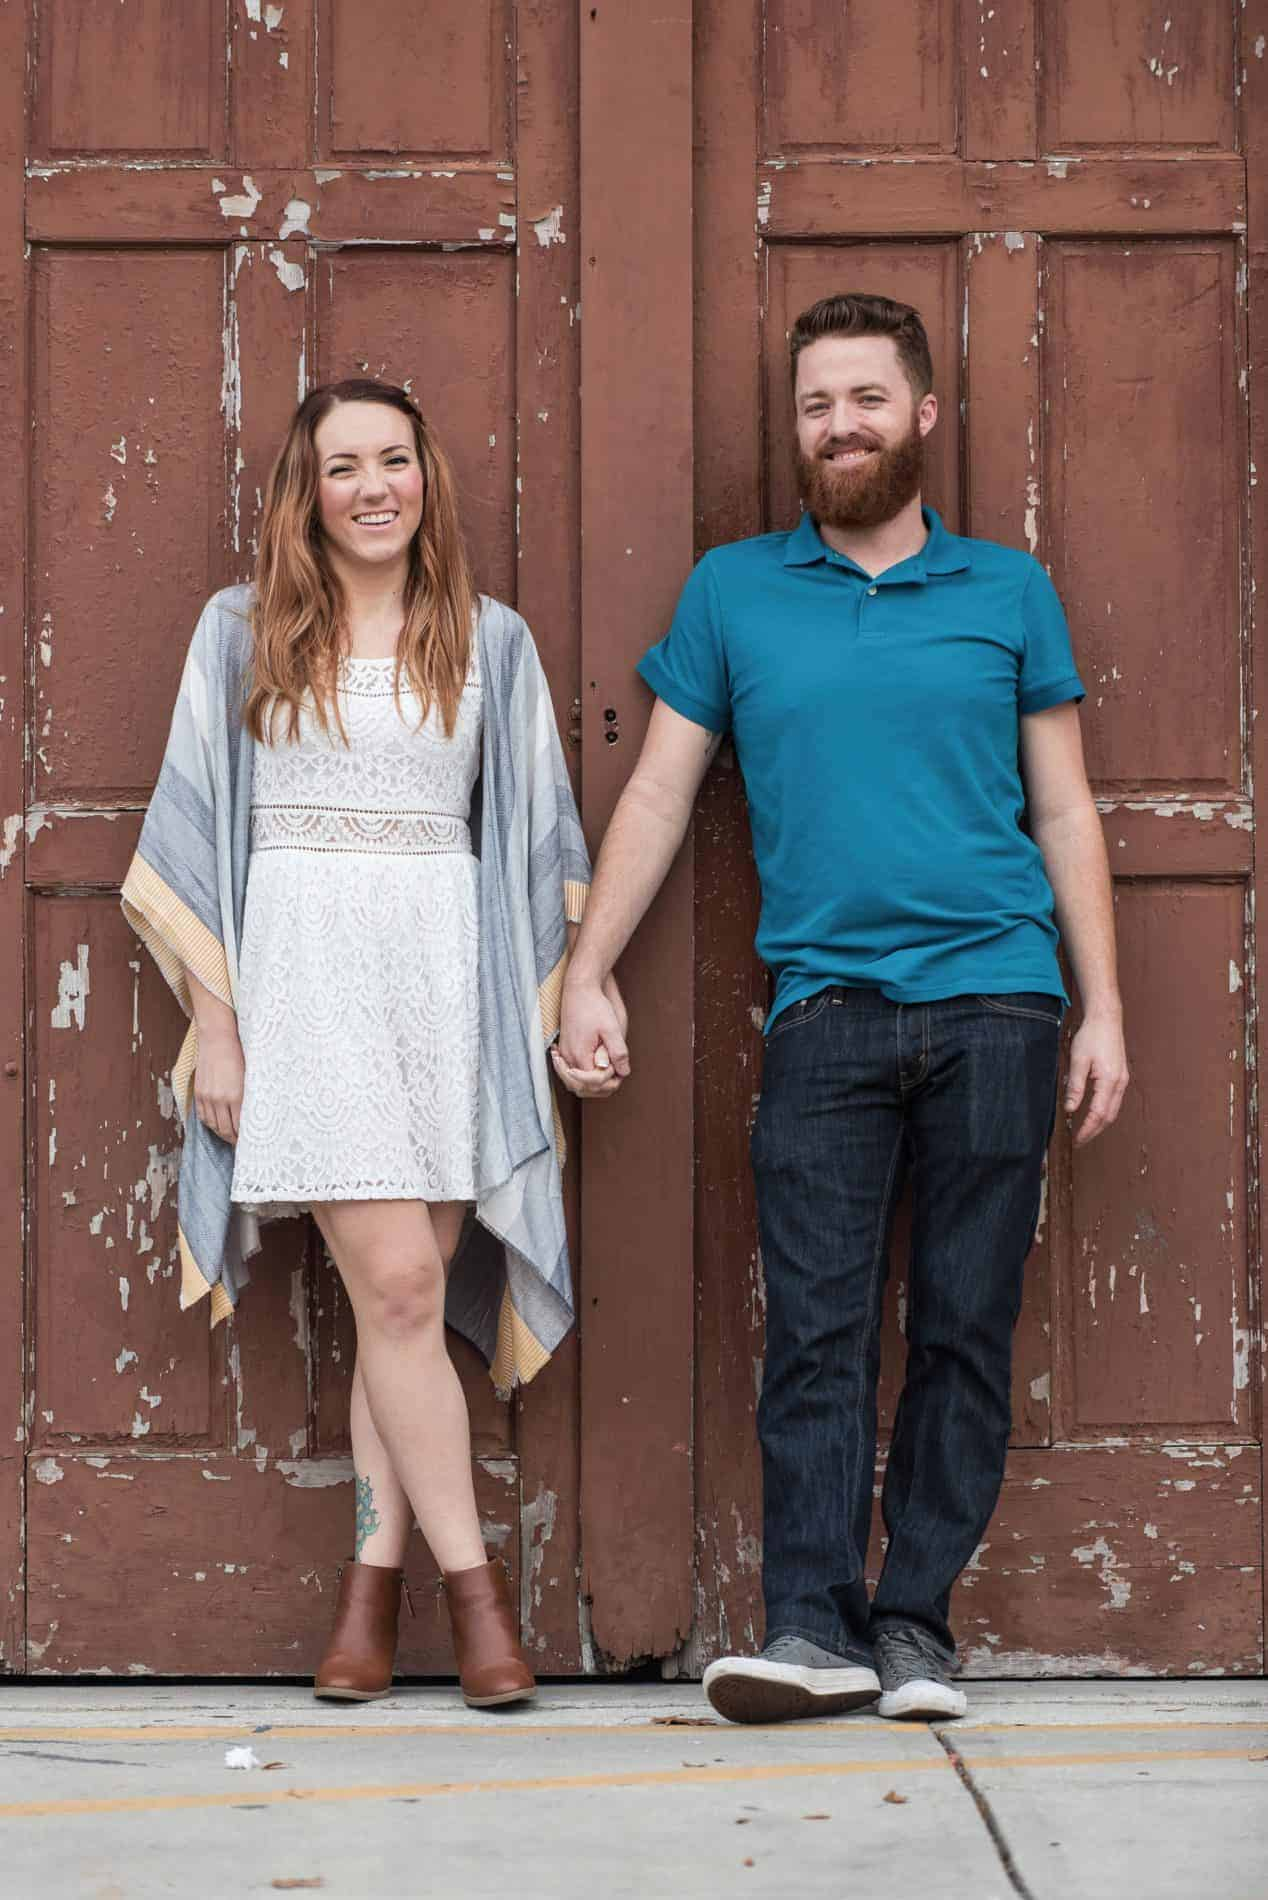 Smiling Engaged Couple in front of rustic door